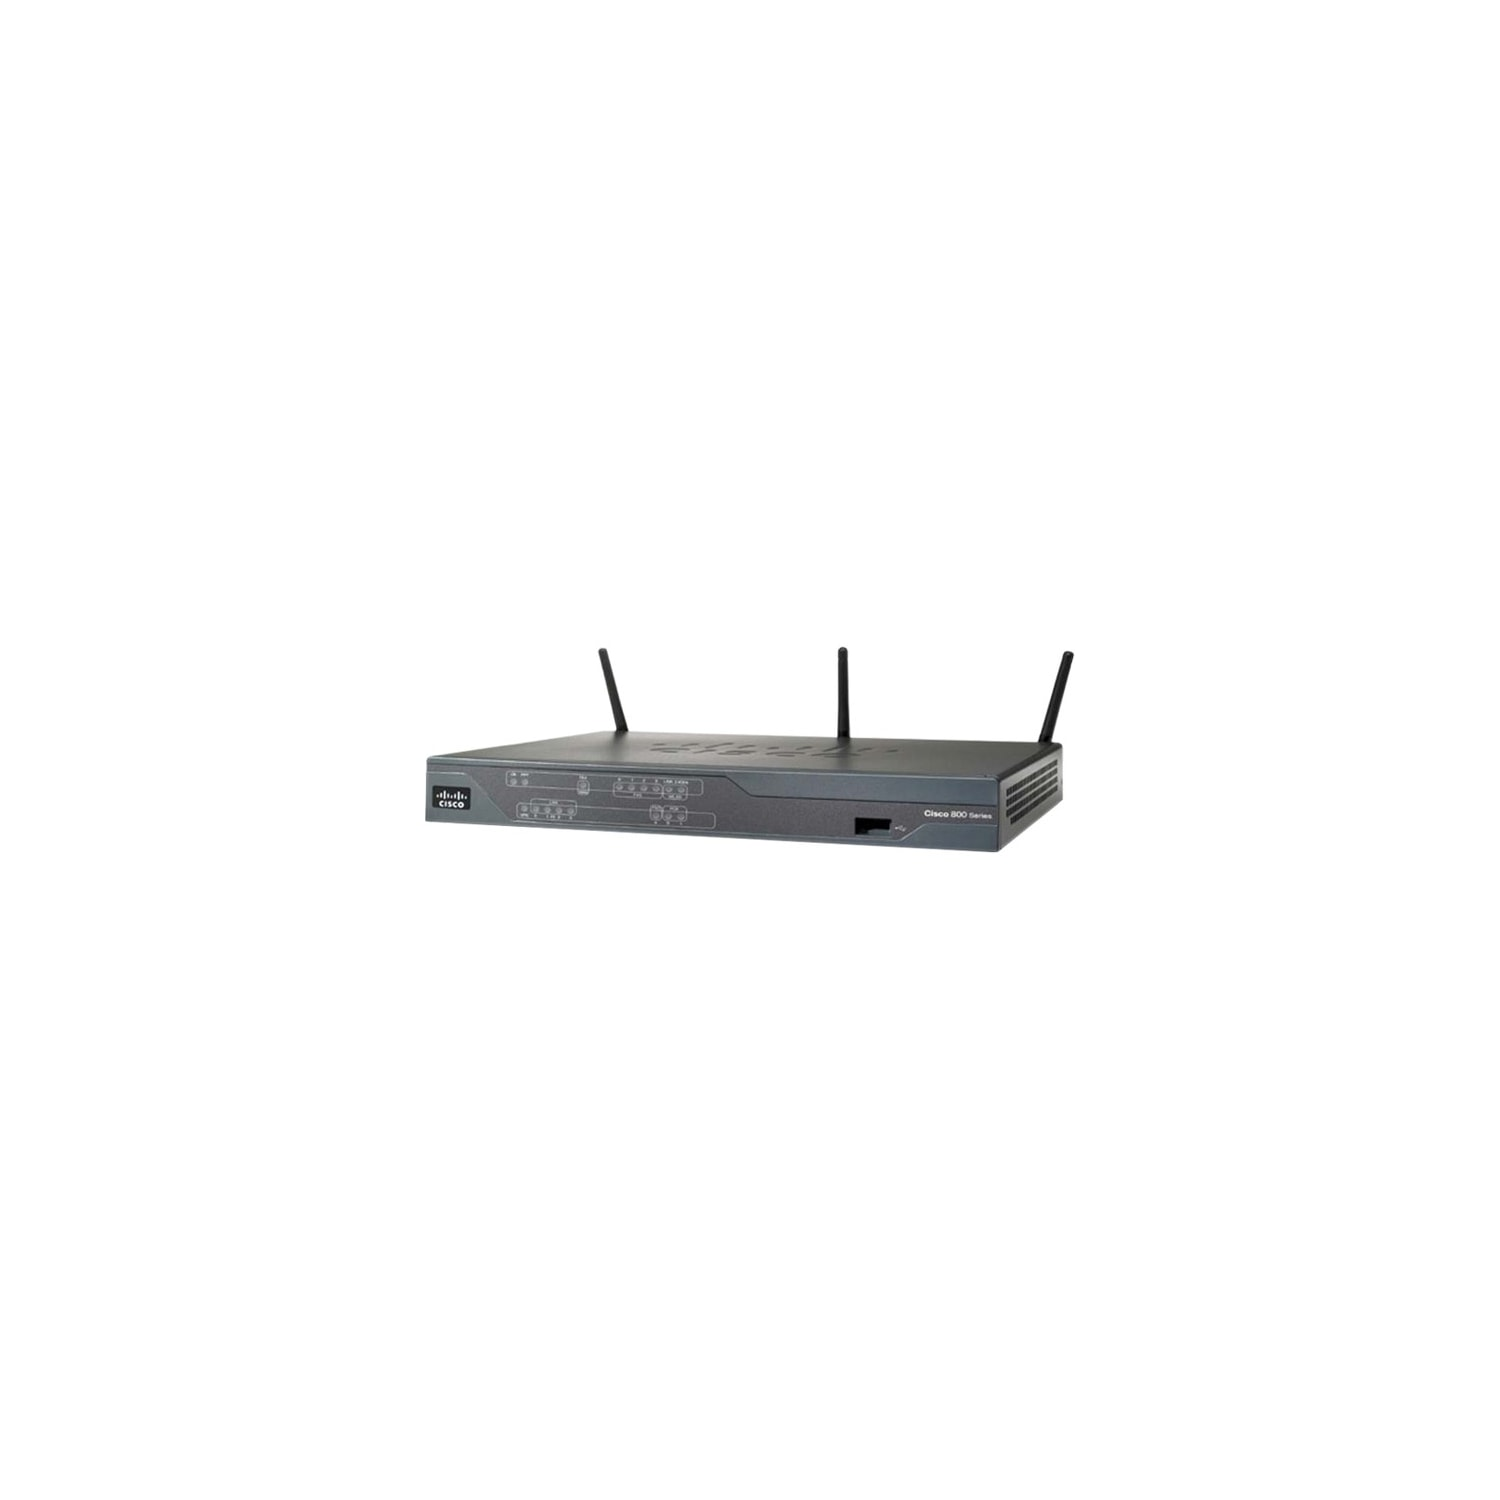 Buy Cisco 887VAW IEEE 802.11n Modem/Wireless Router | phase 42